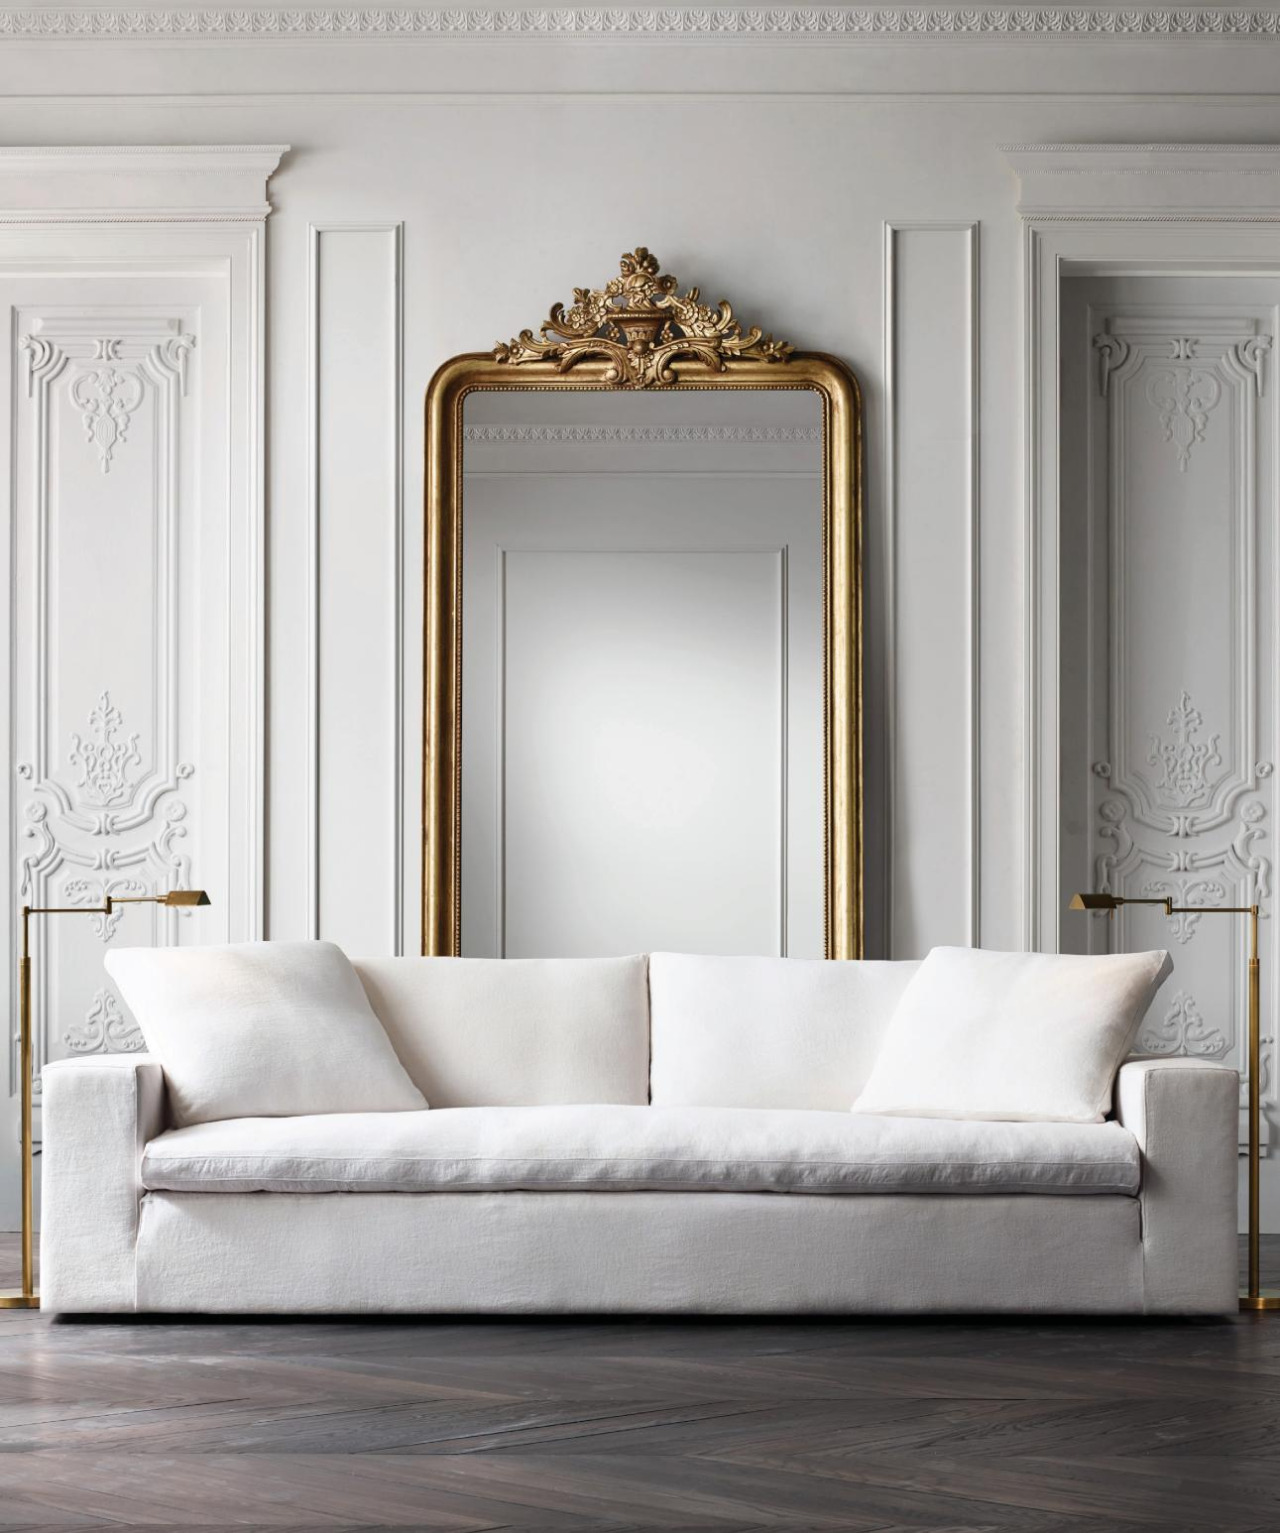 Stunning Wall Mirror Designs For Your Living Room Decor Wall Mirror Designs  Stunning Wall Mirror Designs